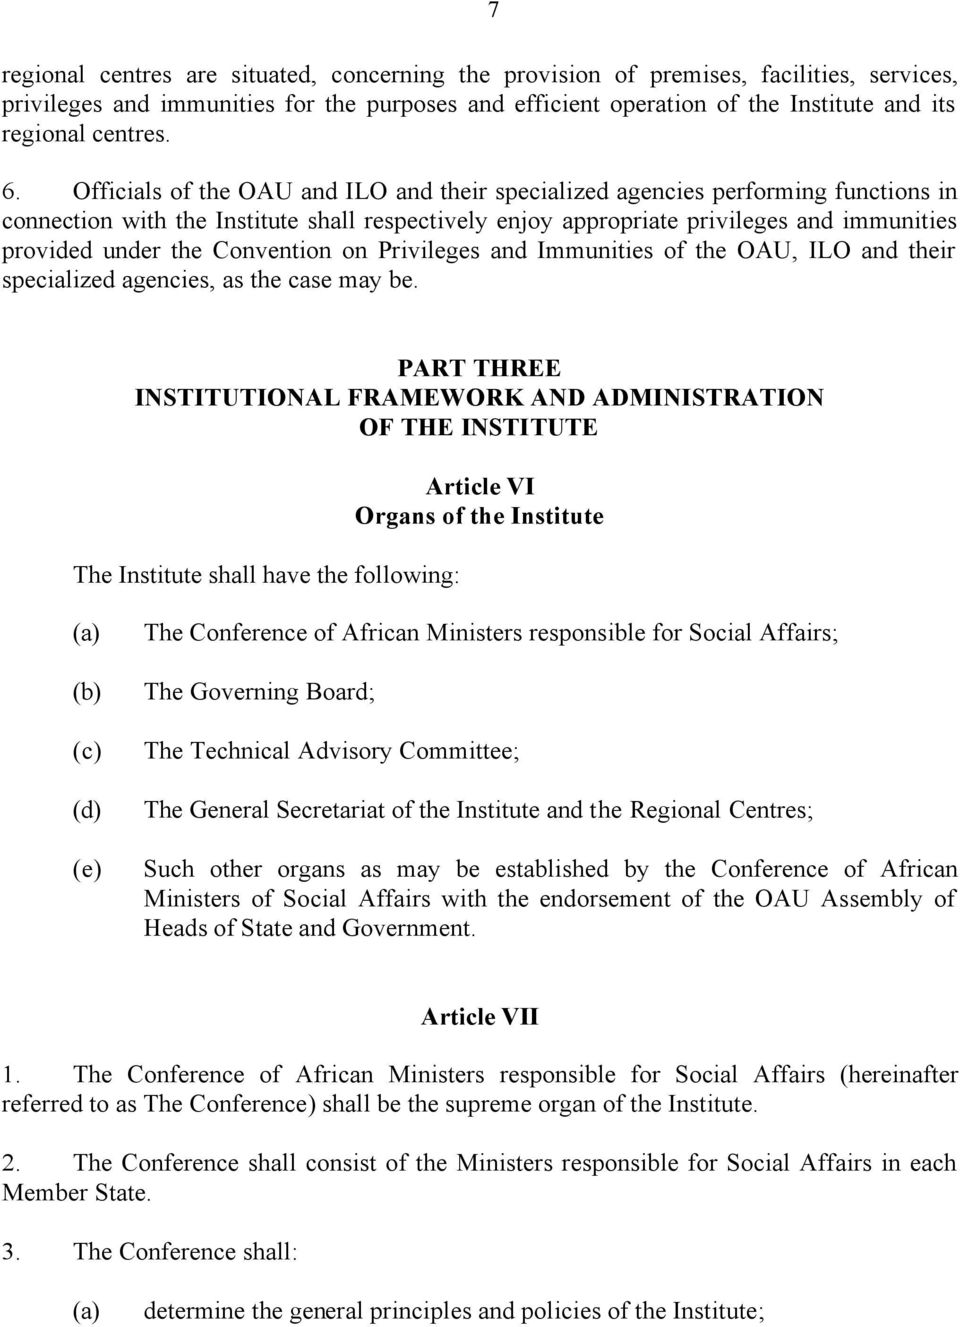 Convention on Privileges and Immunities of the OAU, ILO and their specialized agencies, as the case may be.